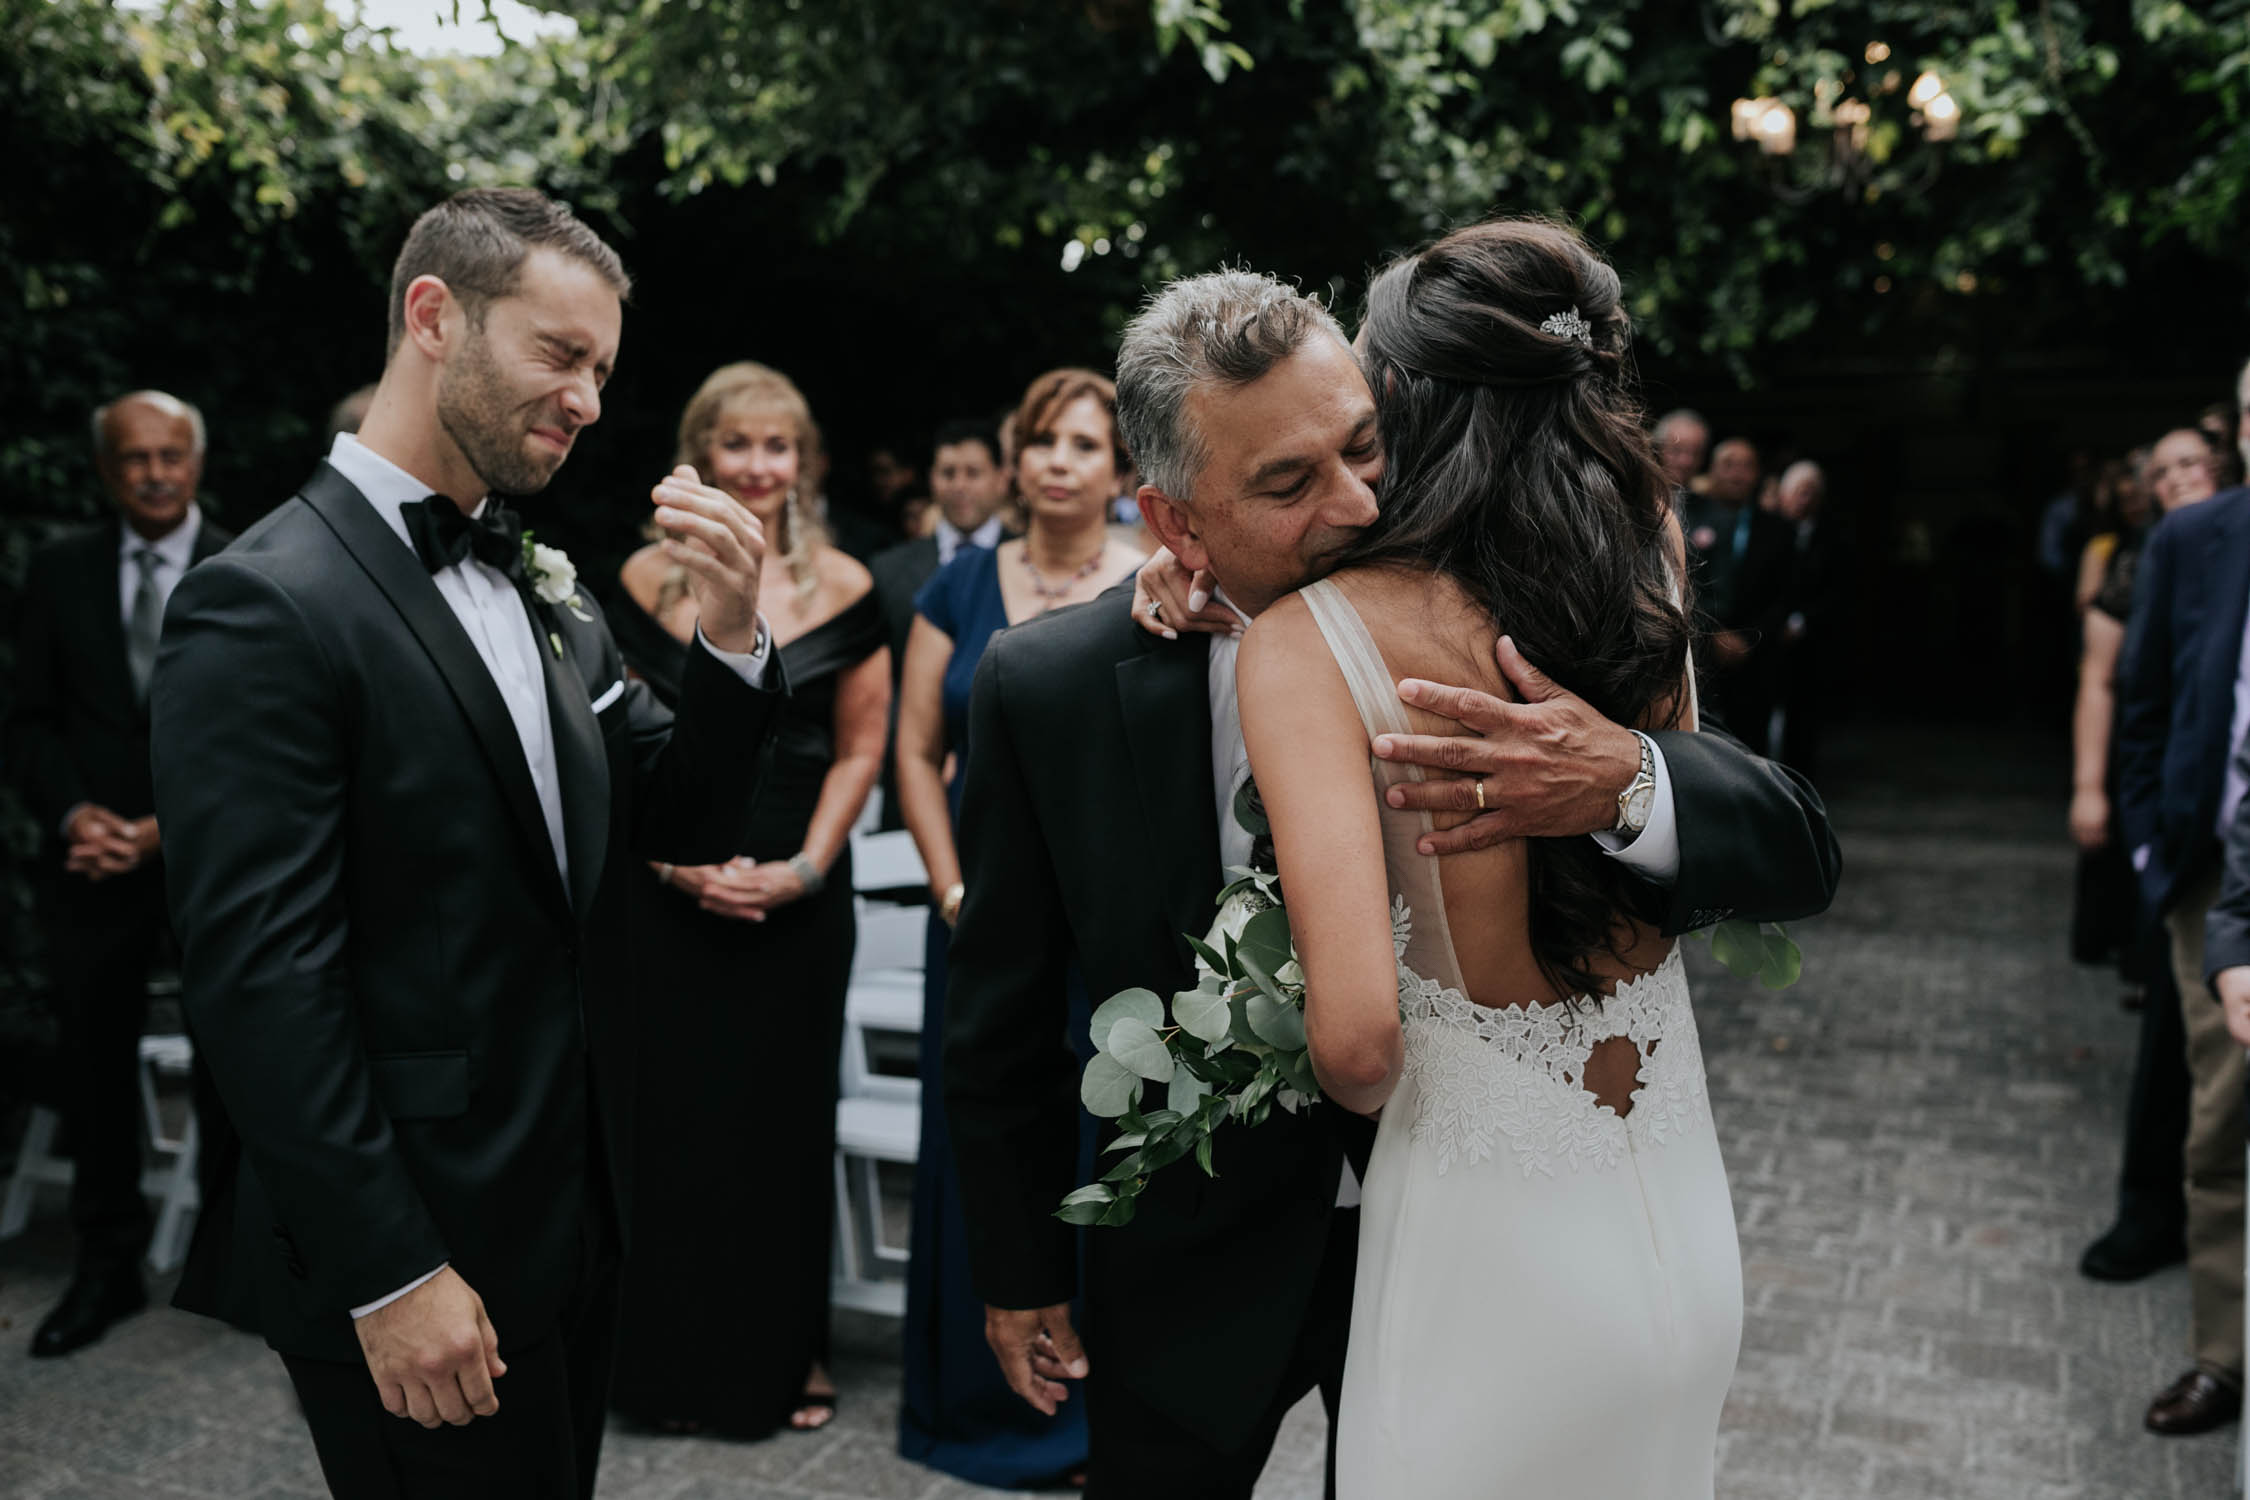 Emotional candid moment of groom crying as bride and father hug top of the aisle in Greenhouse chapel at Madsen's Greenhouse wedding venue in Newmarket close to Toronto